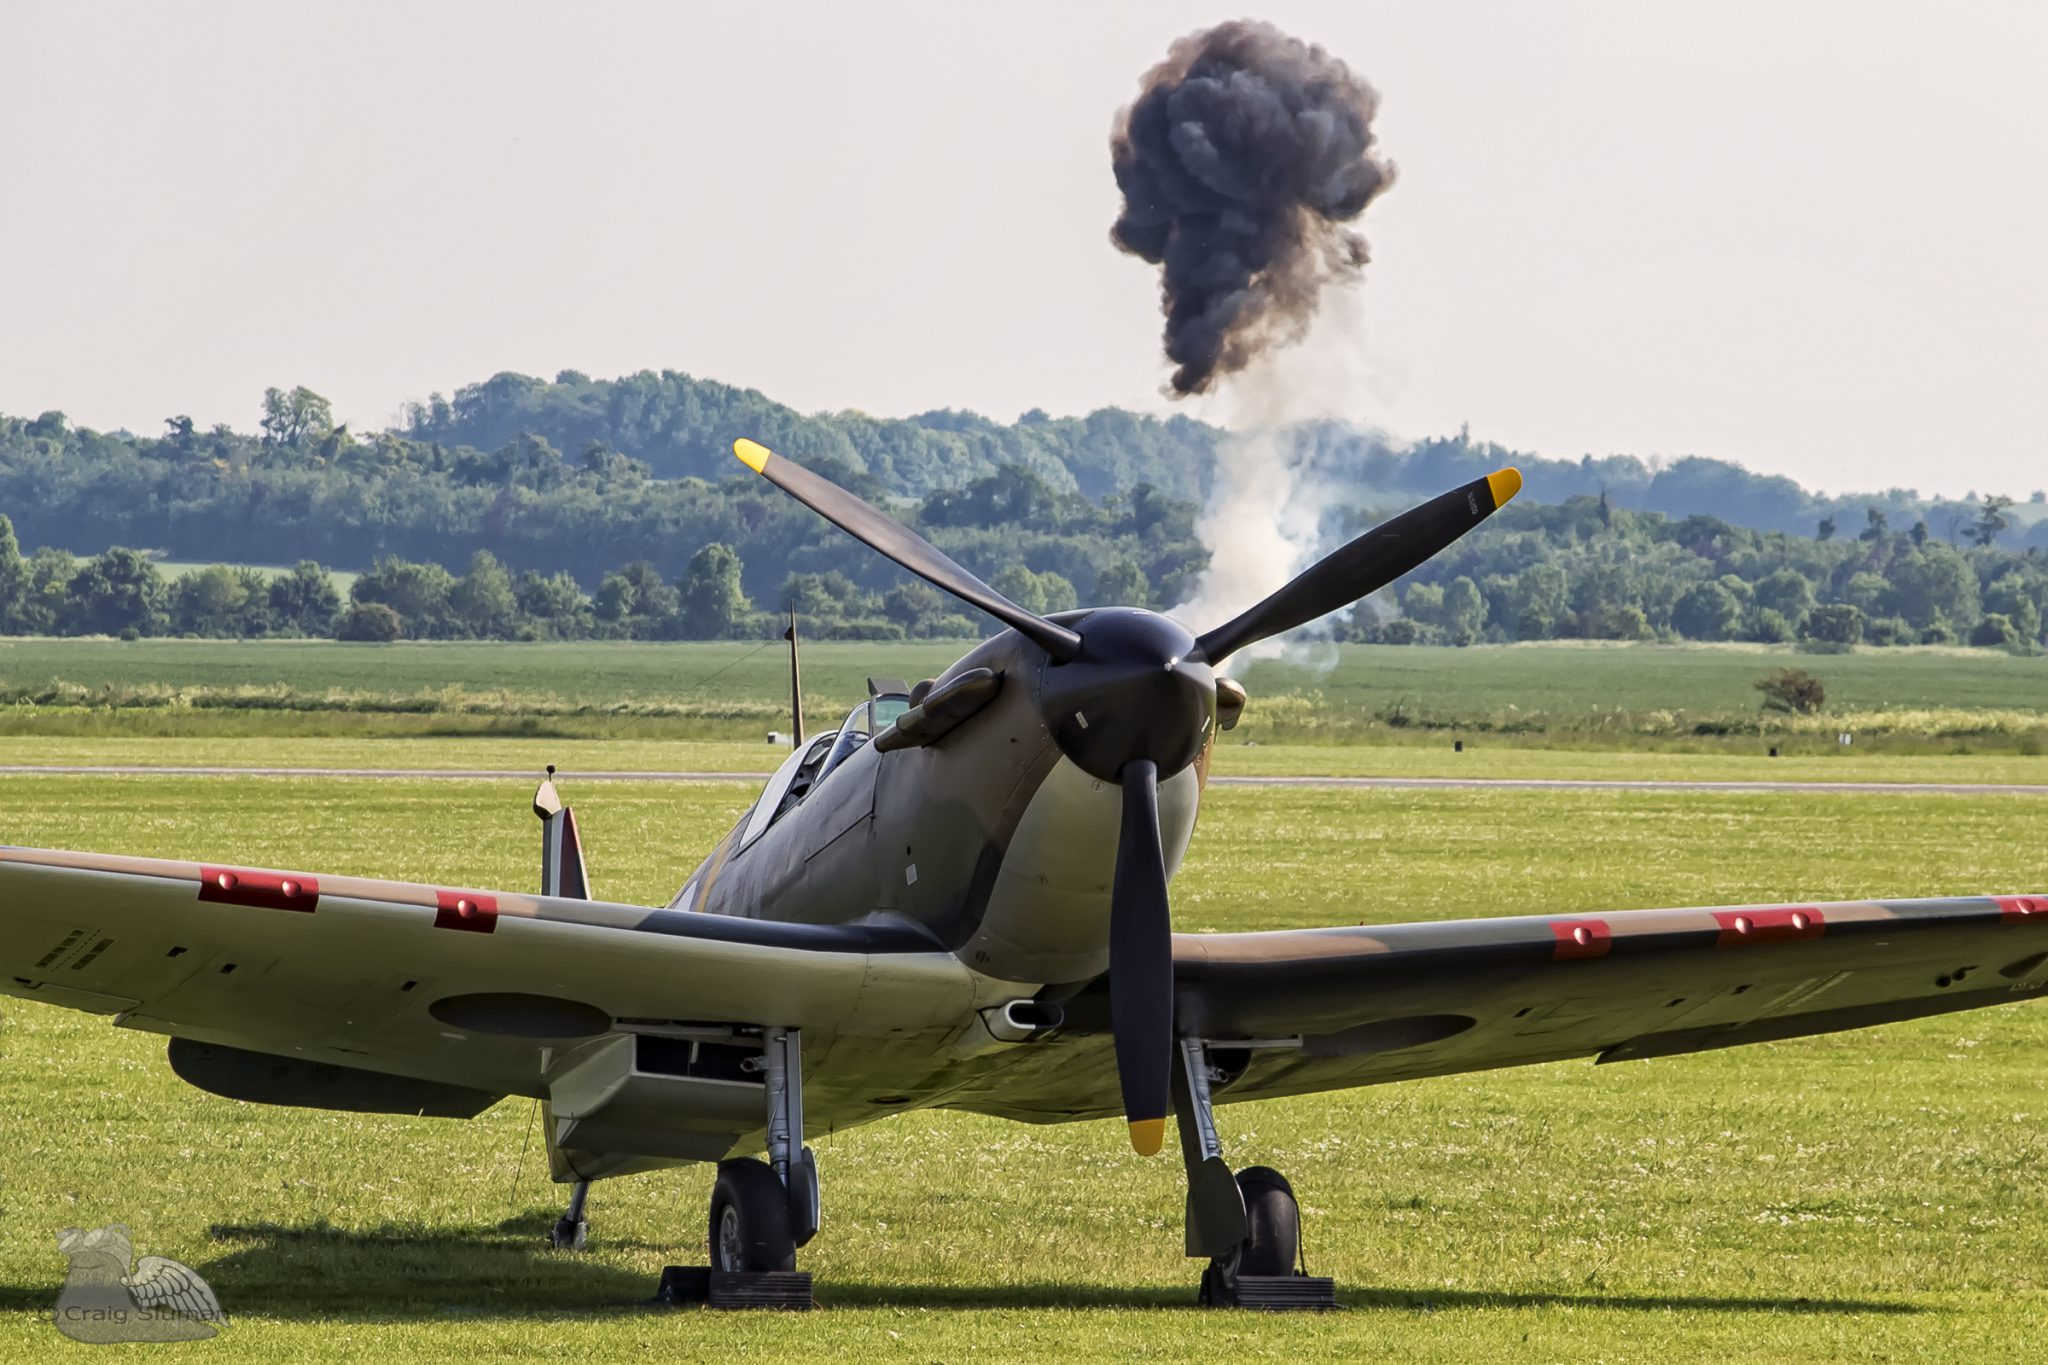 spitfire mk1 craig sluman the hardest day